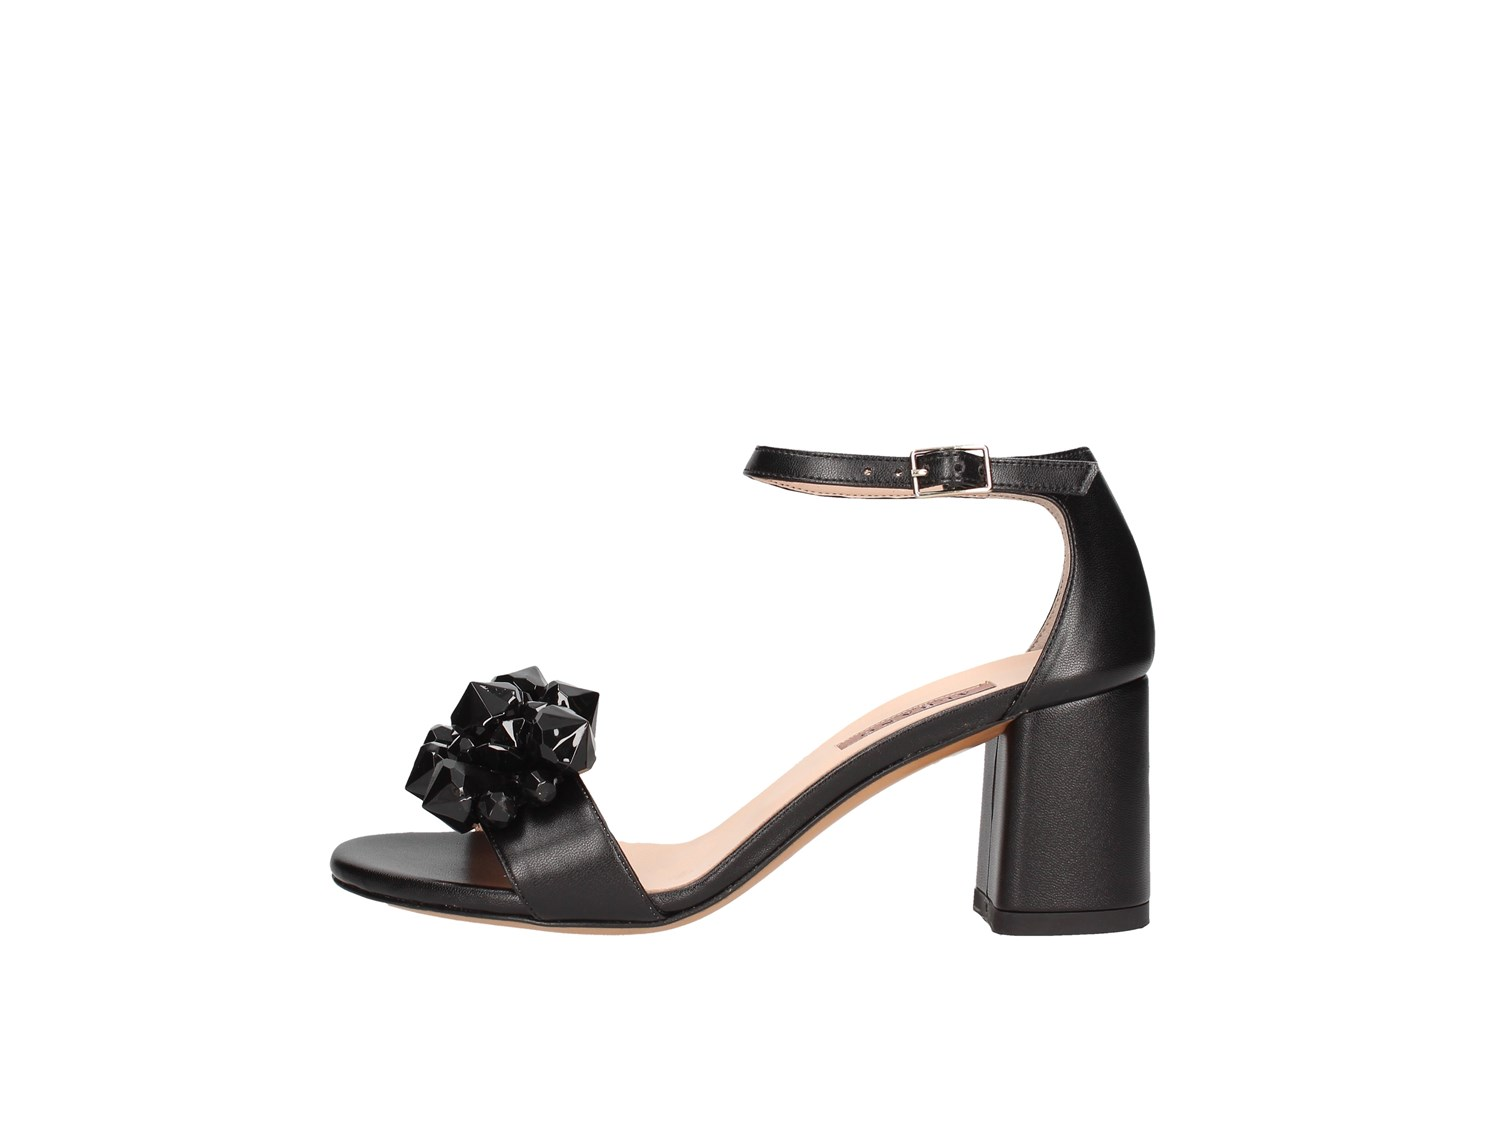 Albano 4016 Black Shoes Women Sandal